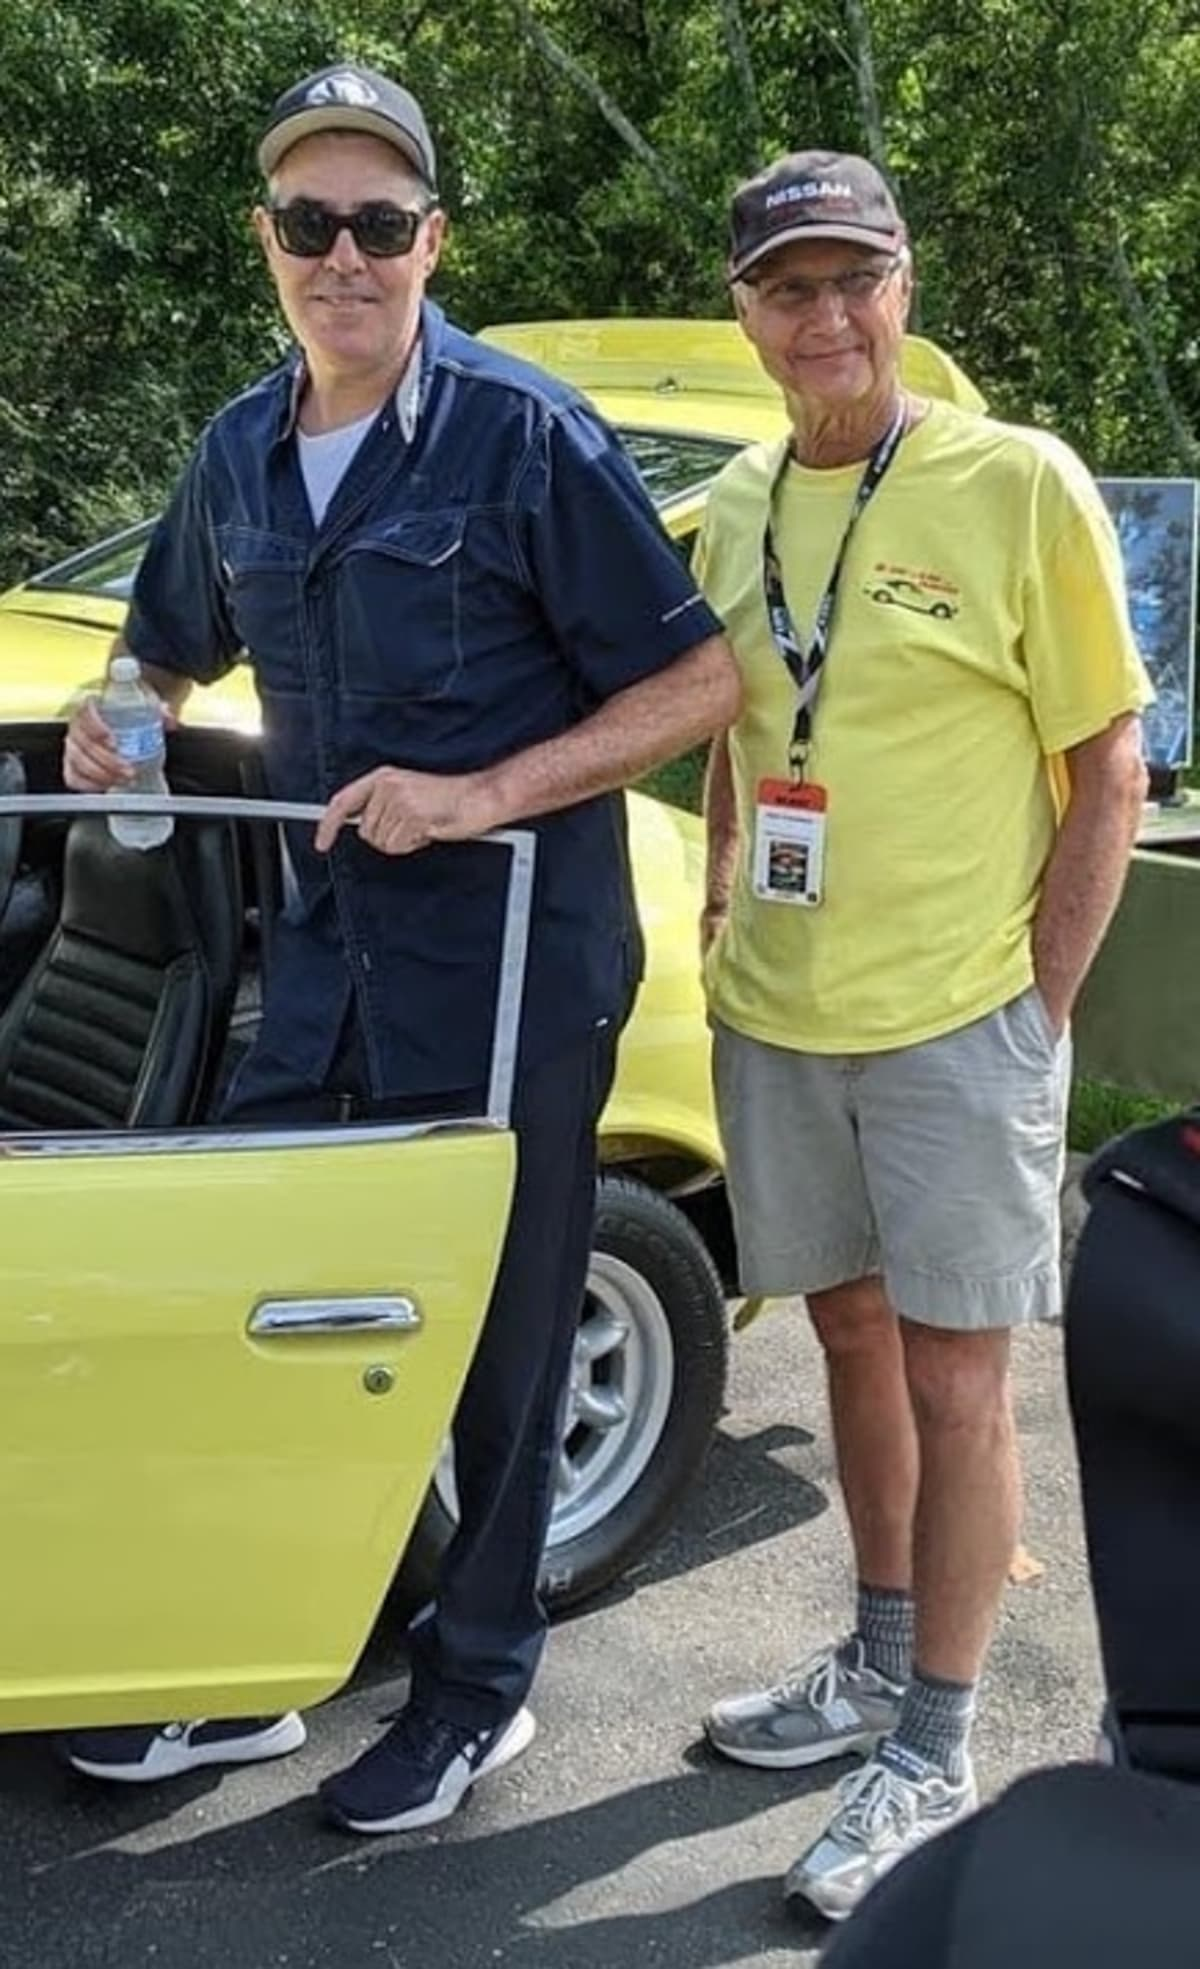 Datsun racer and collector Adam Carolla attended the event and helped with the judging. In the photo with his bodyguard.